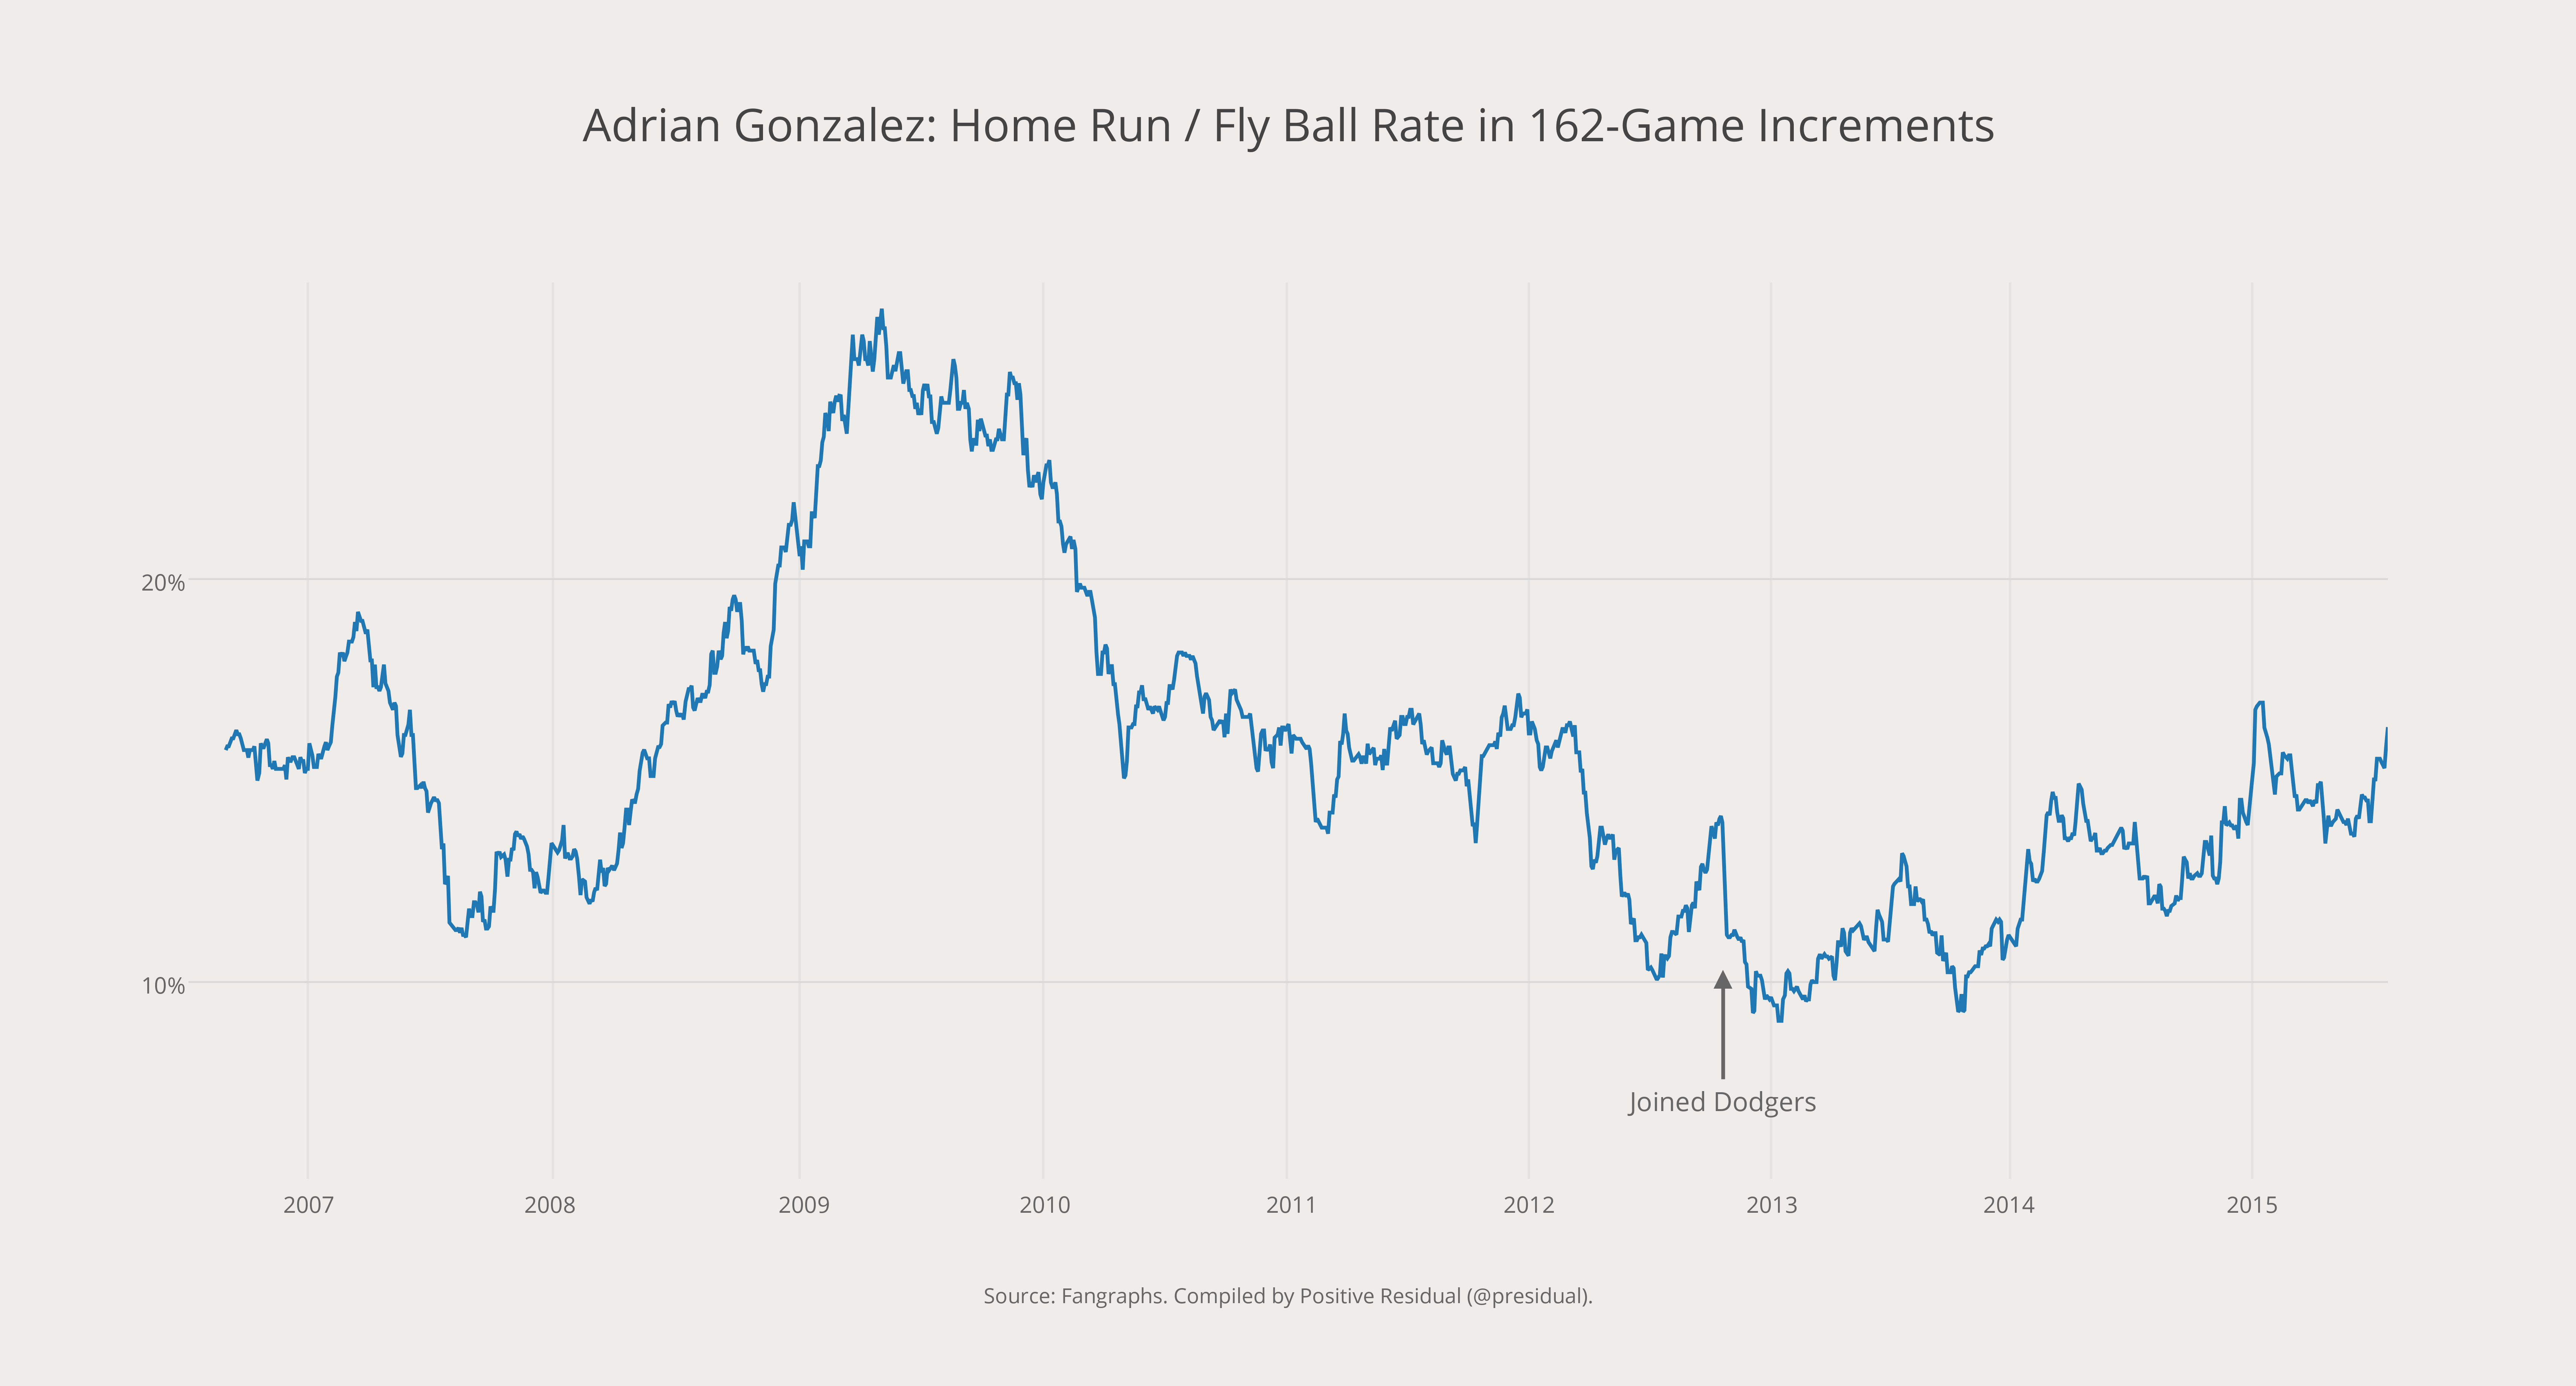 Adrian Gonzalez- Home Run - Fly Ball Rate in 162-Game Increments